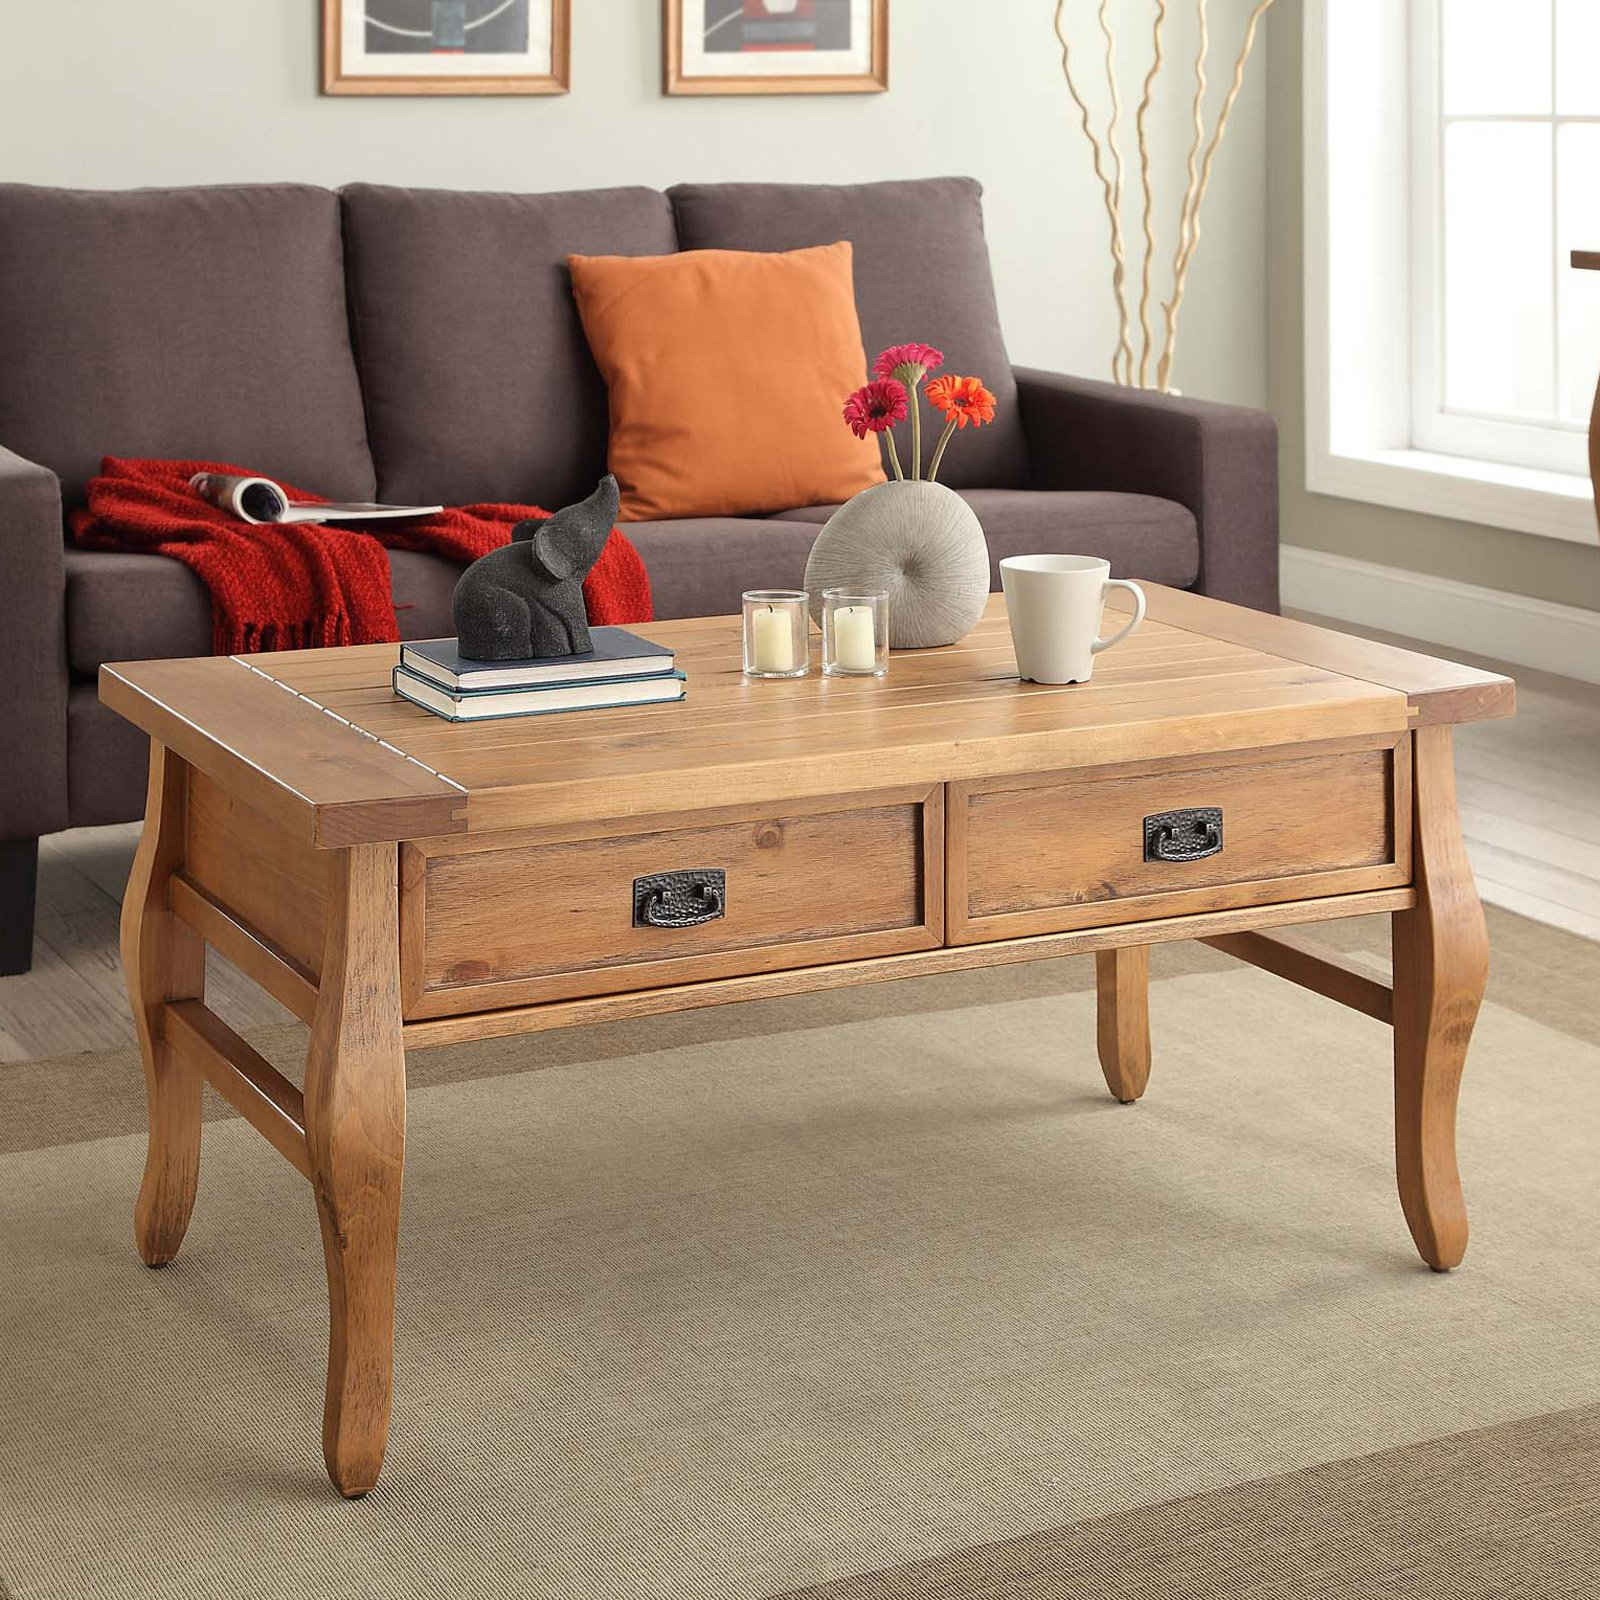 Popular Linon Santa Fe Coffee Table, Two Storage Drawers, Antique Finish Within Santa Fe Coffee Tables (View 12 of 20)